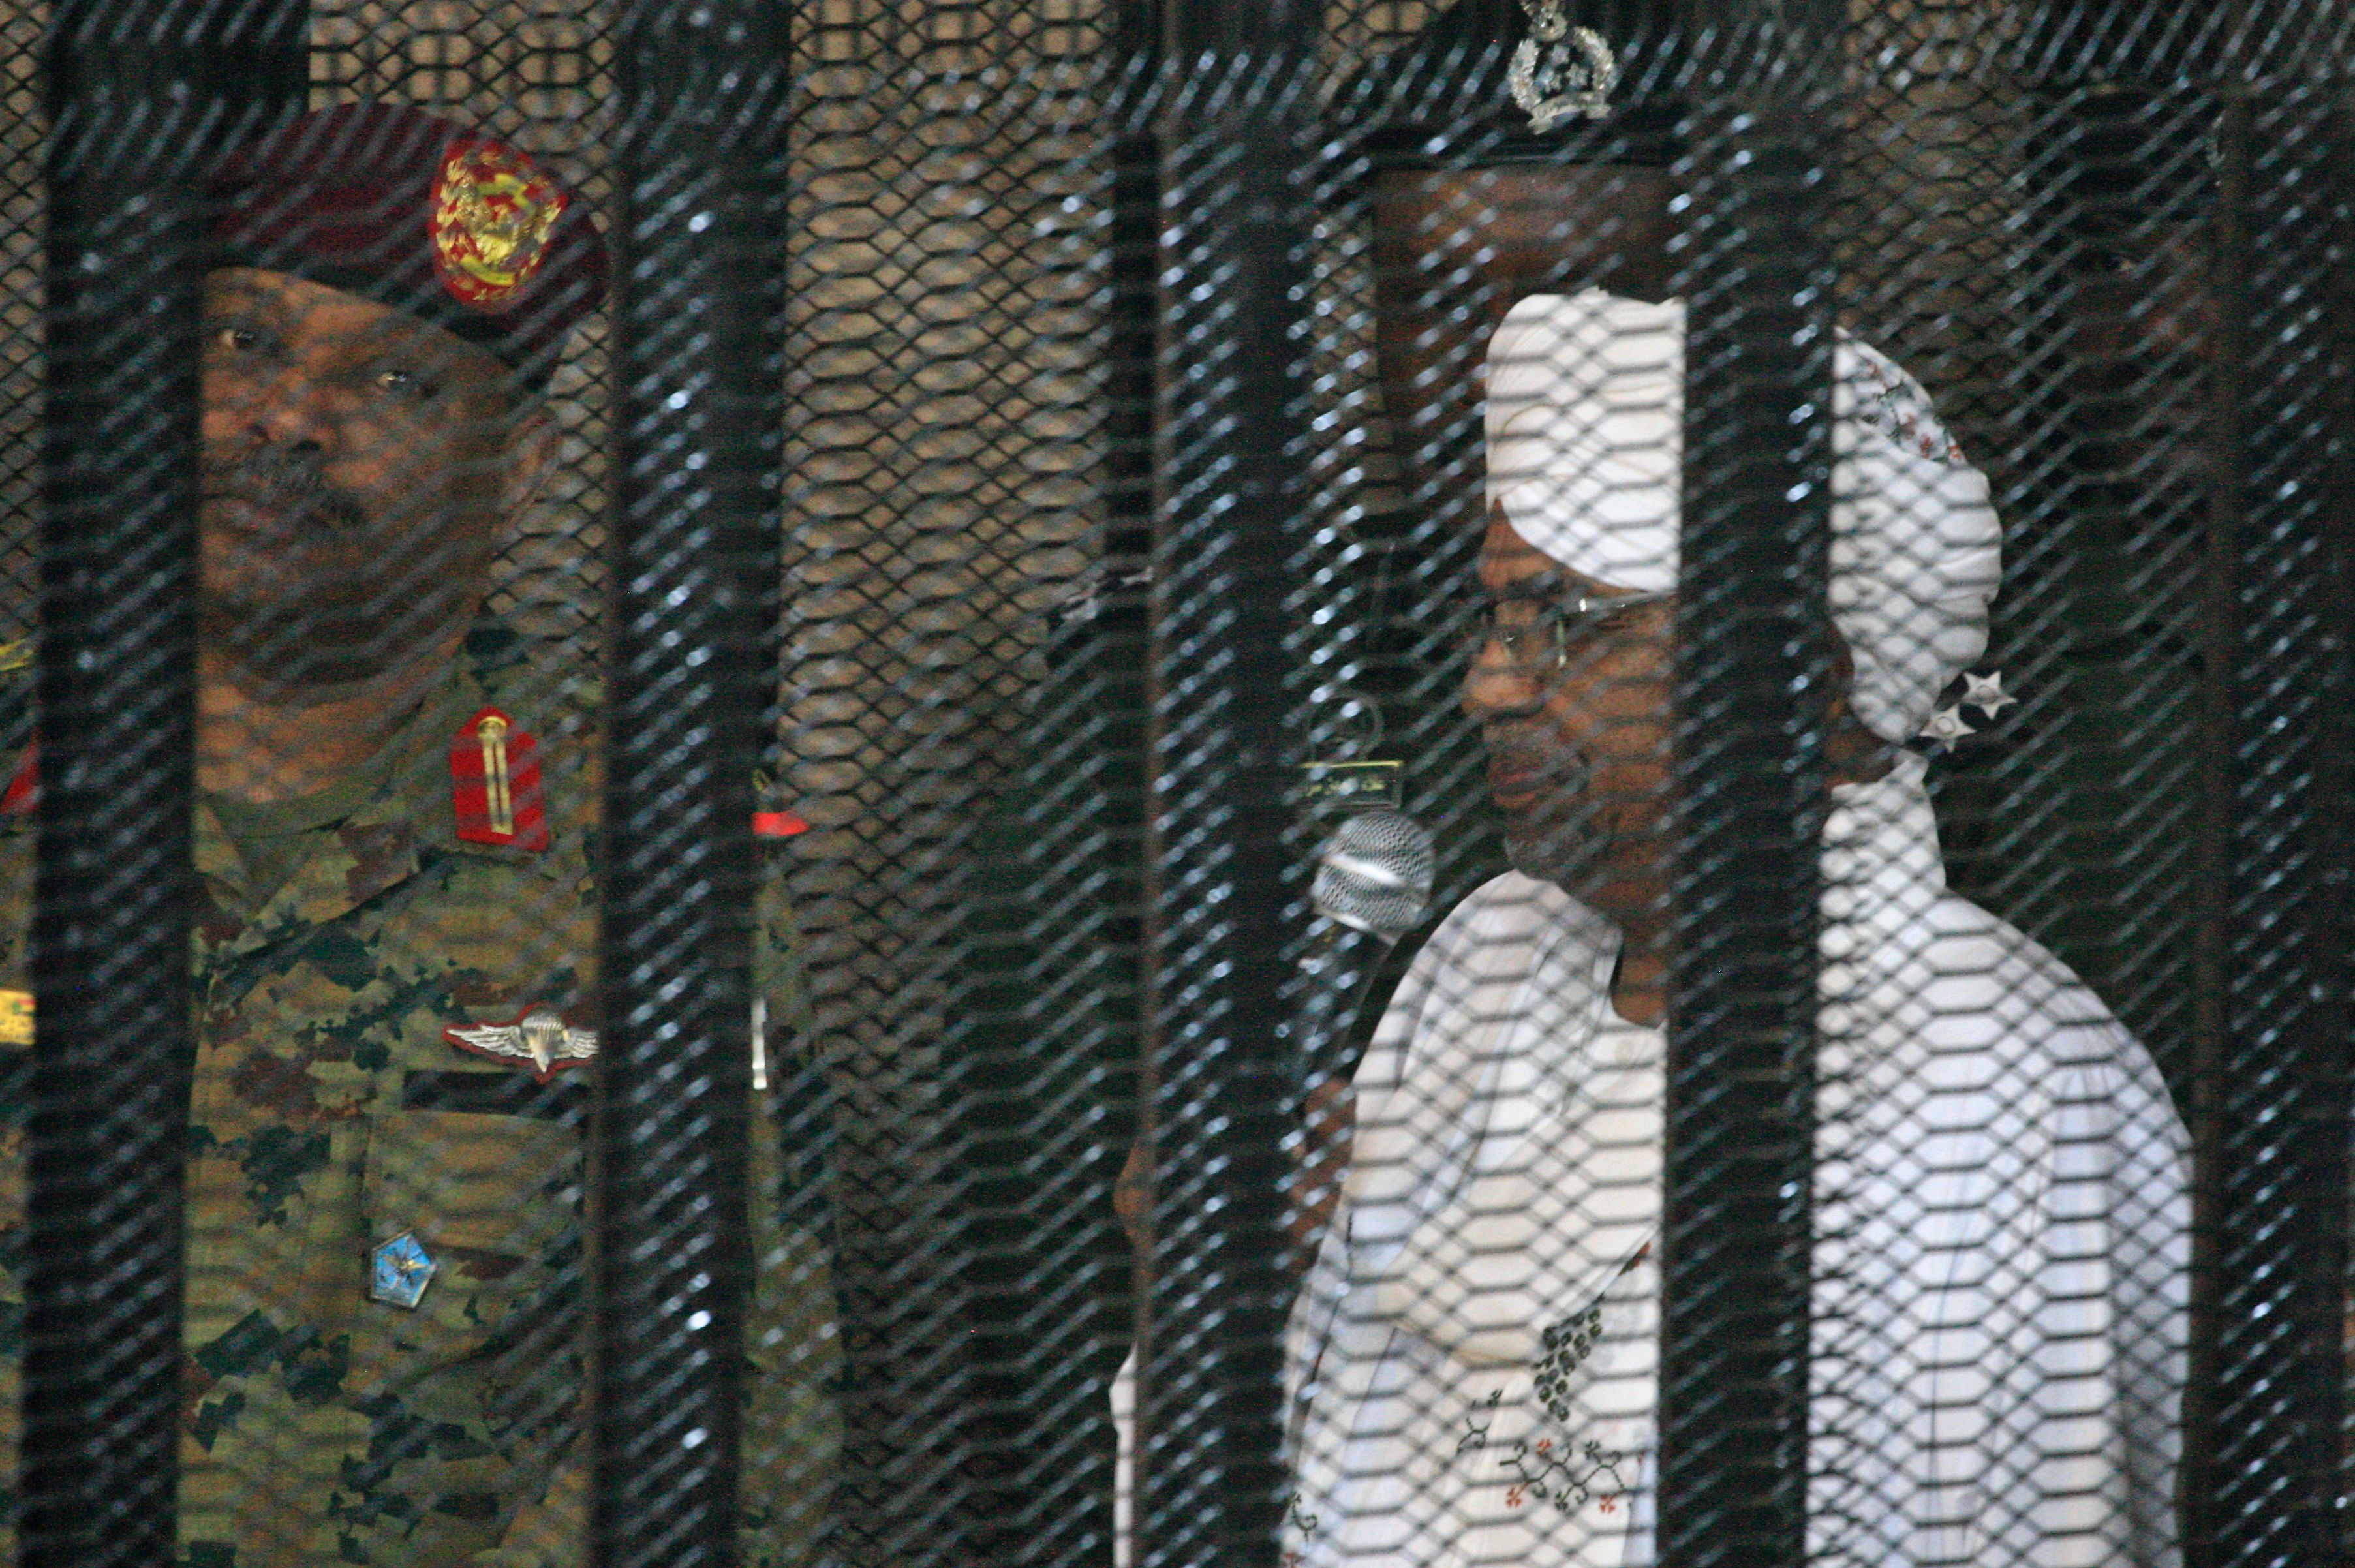 Sudan's former dictator may finally face justice for the Darfur genocide